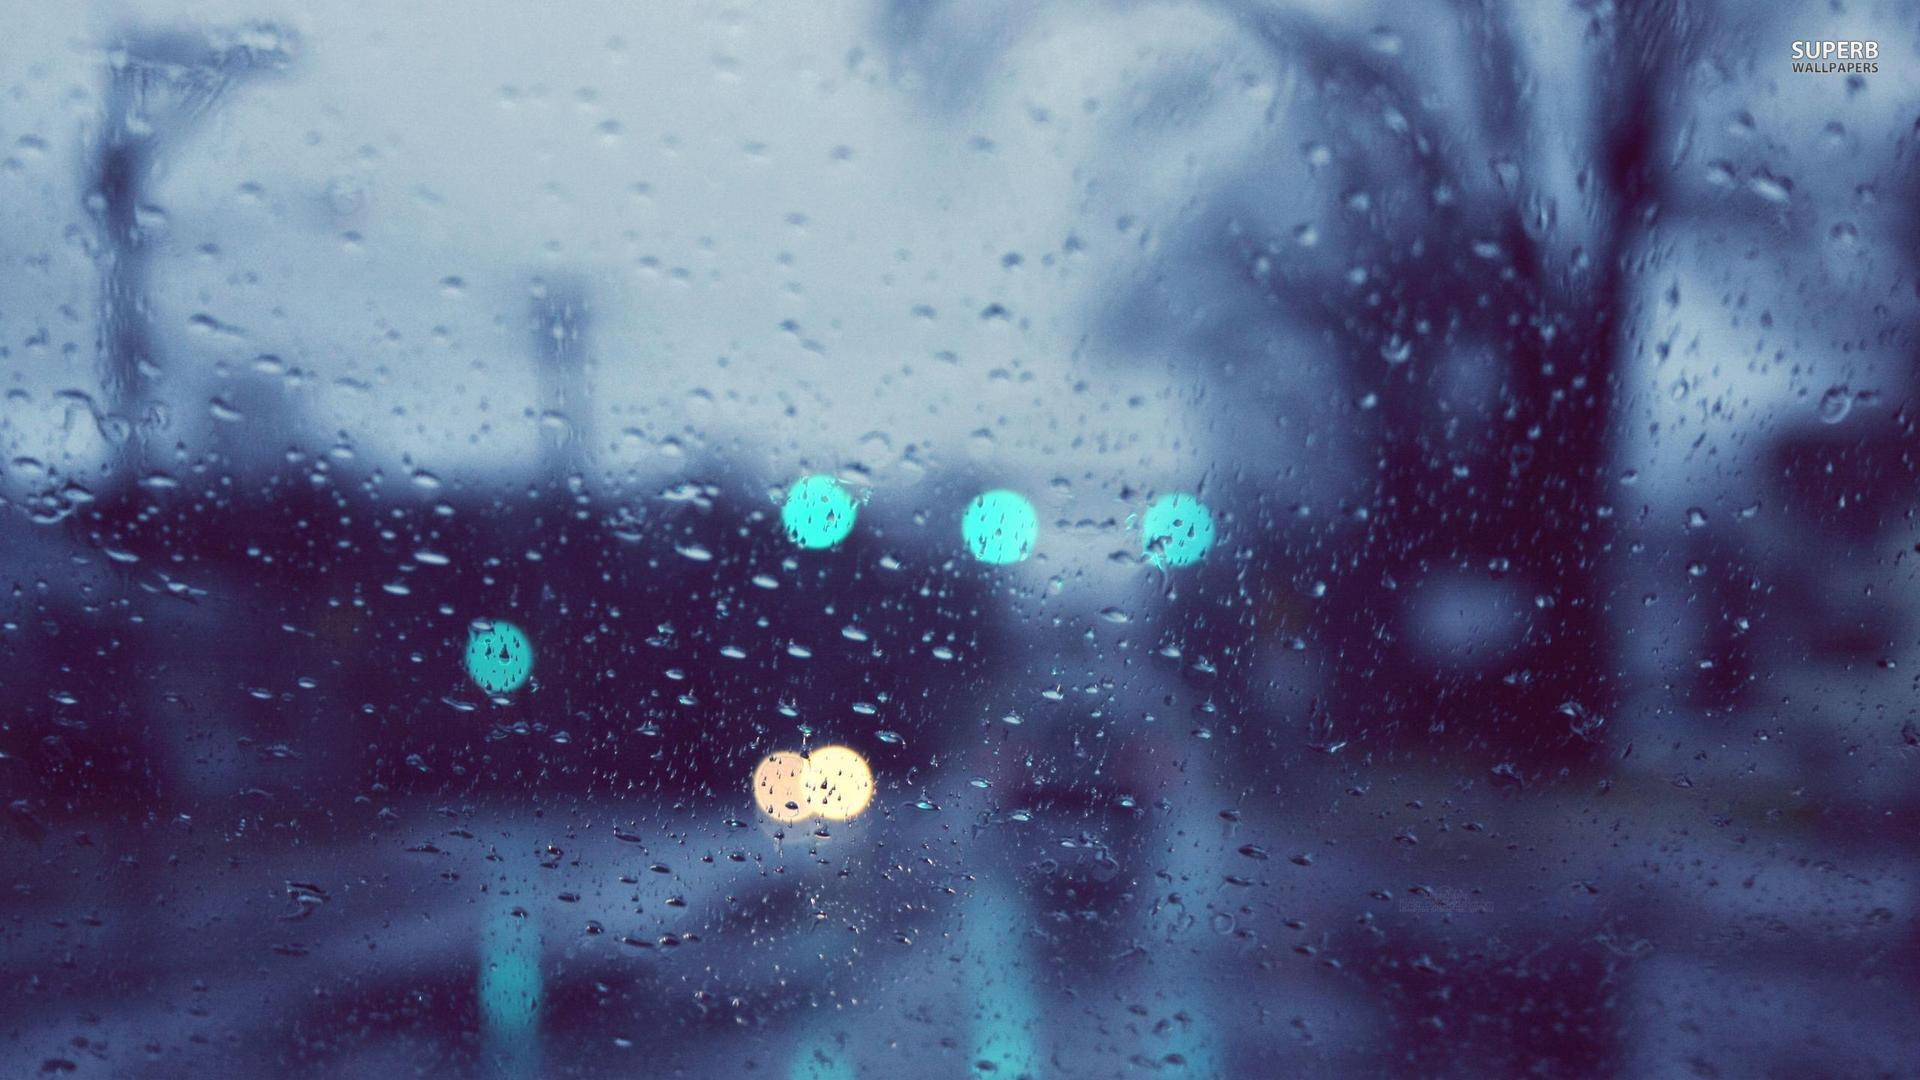 Rainy window wallpaper 1920x1080